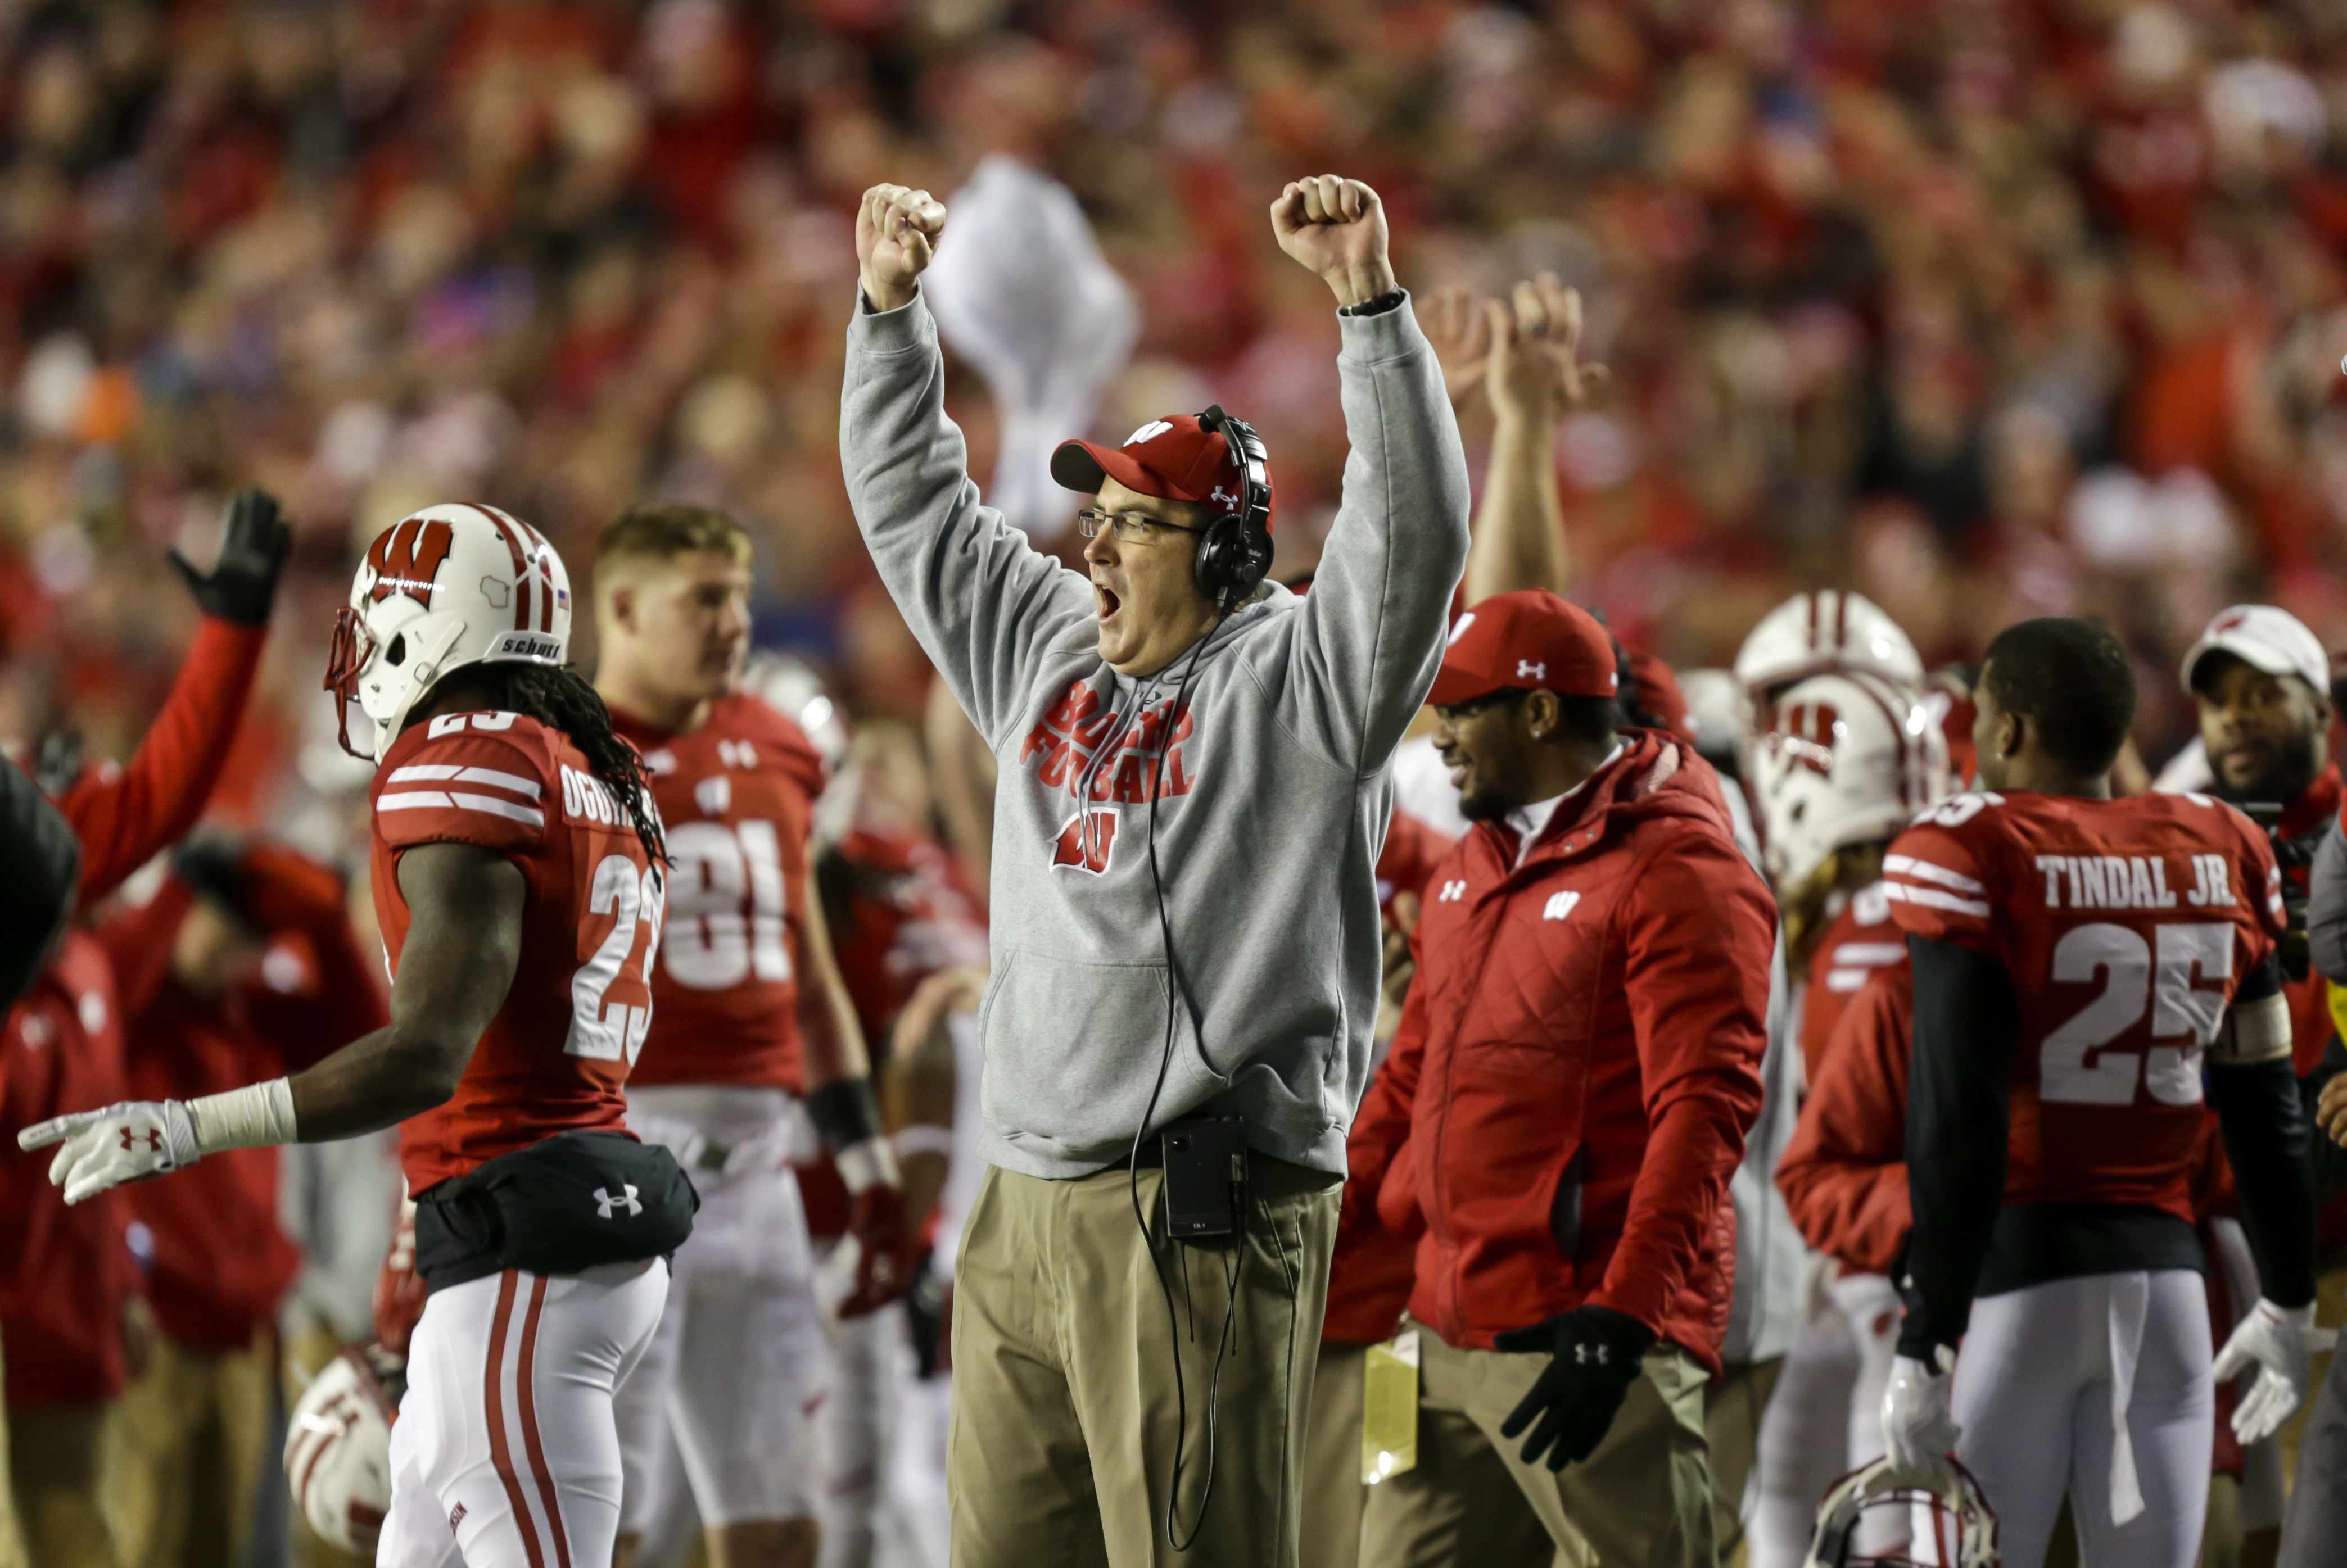 Wisconsin coach Paul Chryst celebrates after a touchdown against Minnesota during the second half of an NCAA college football game Saturday, Nov. 26, 2016, in Madison, Wis. Wisconsin won 31-17. (AP Photo/Andy Manis)